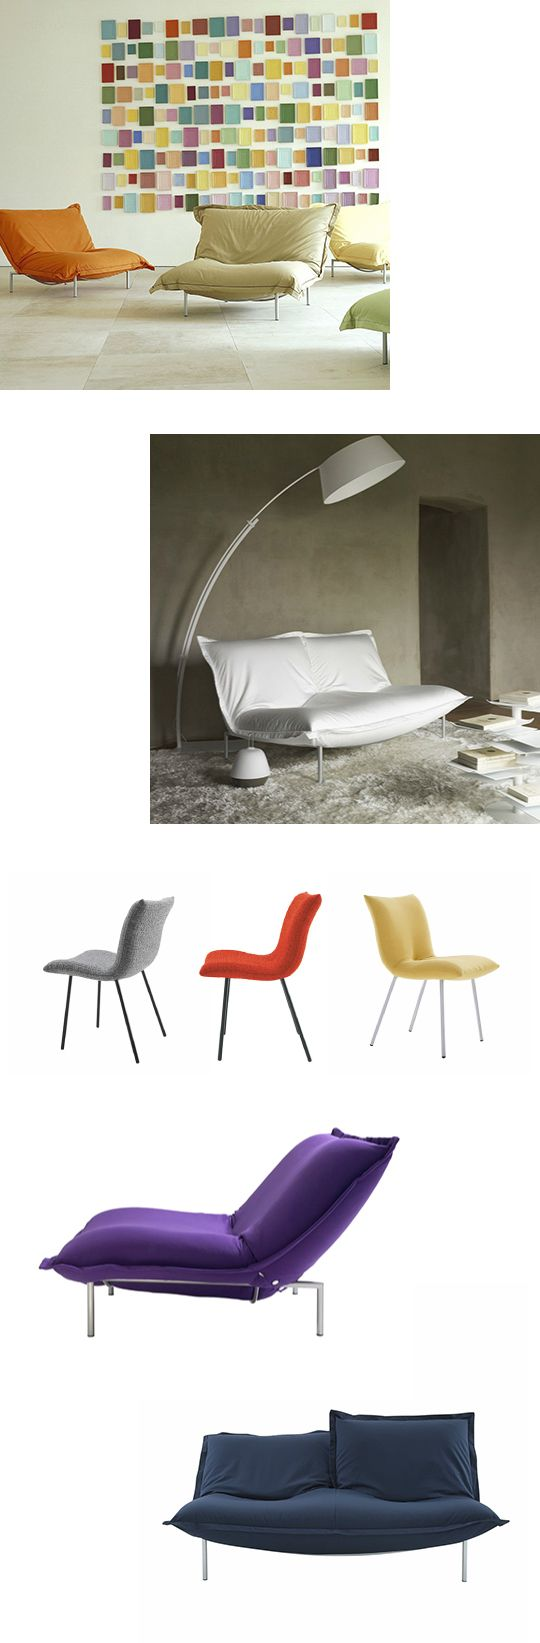 Island dining chair by ligne roset modern dining chairs los angeles - Calin Ligne Roset Seating